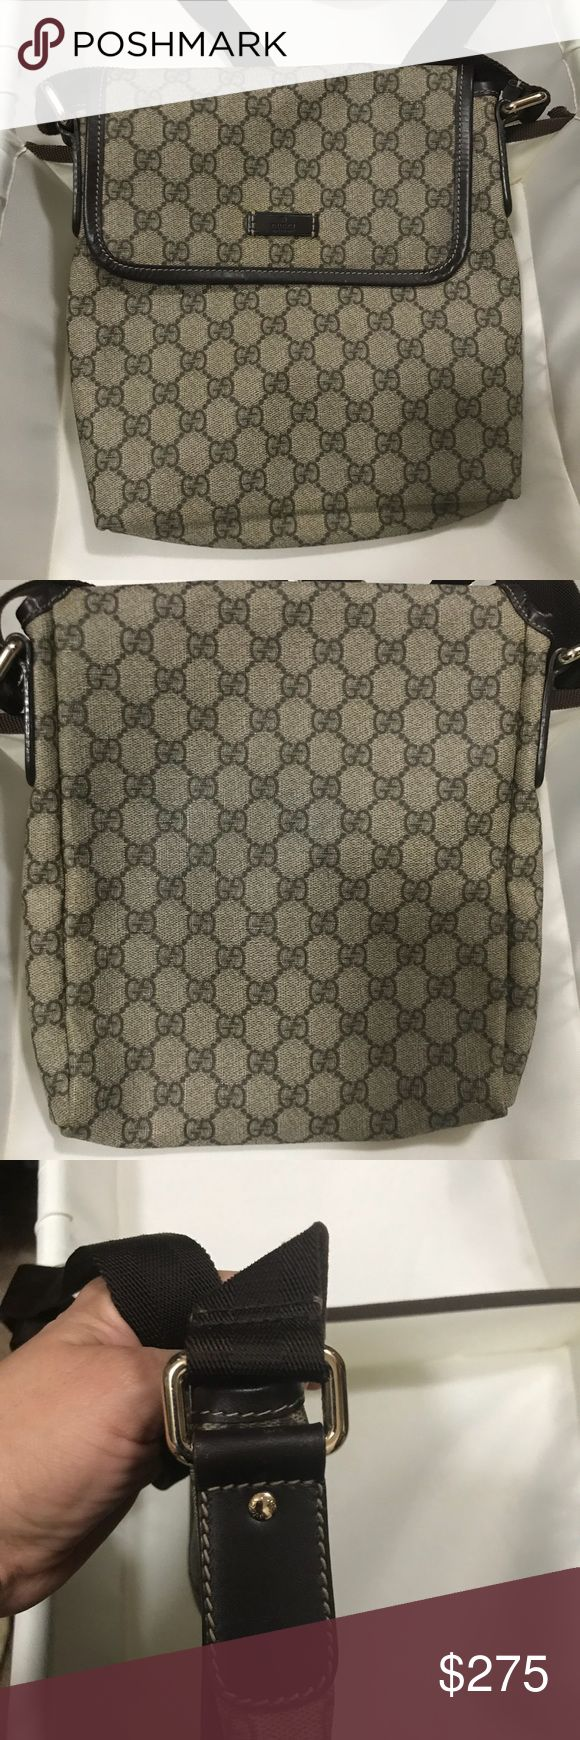 😉 Authentic Gucci Monogram Crossbody In EXCELLENT condition 💯 Authentic Gucci Monogram Canvas Crossbody. Purchased in Florence in 2011. Comes with original dust bag. gucci Bags Crossbody Bags